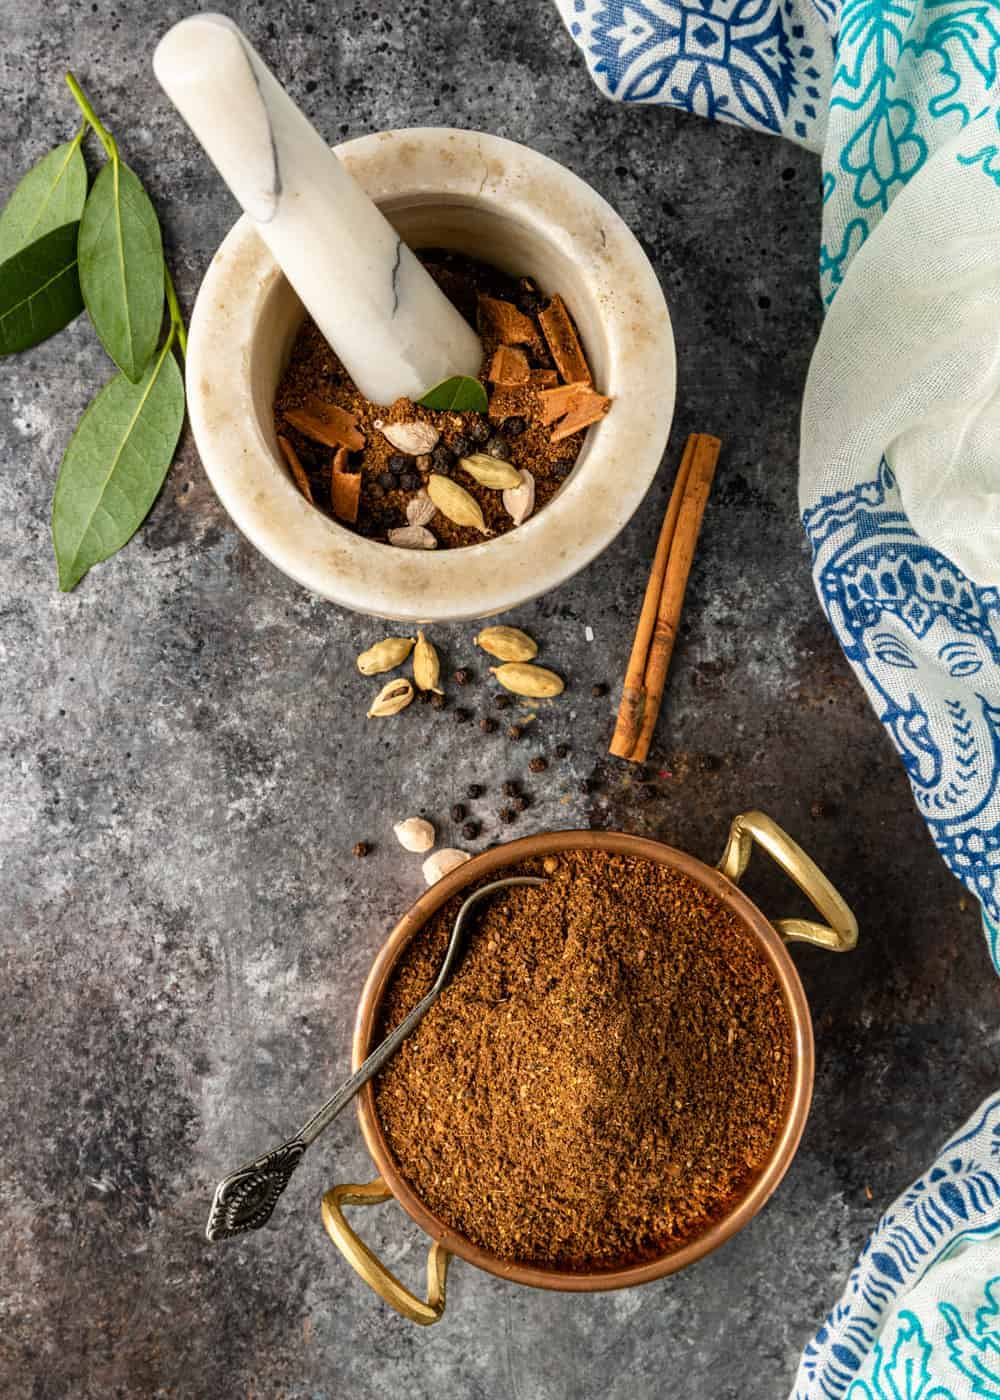 masala seasoning ingredients in a mortar and pestle next to a small bowl with ground spices